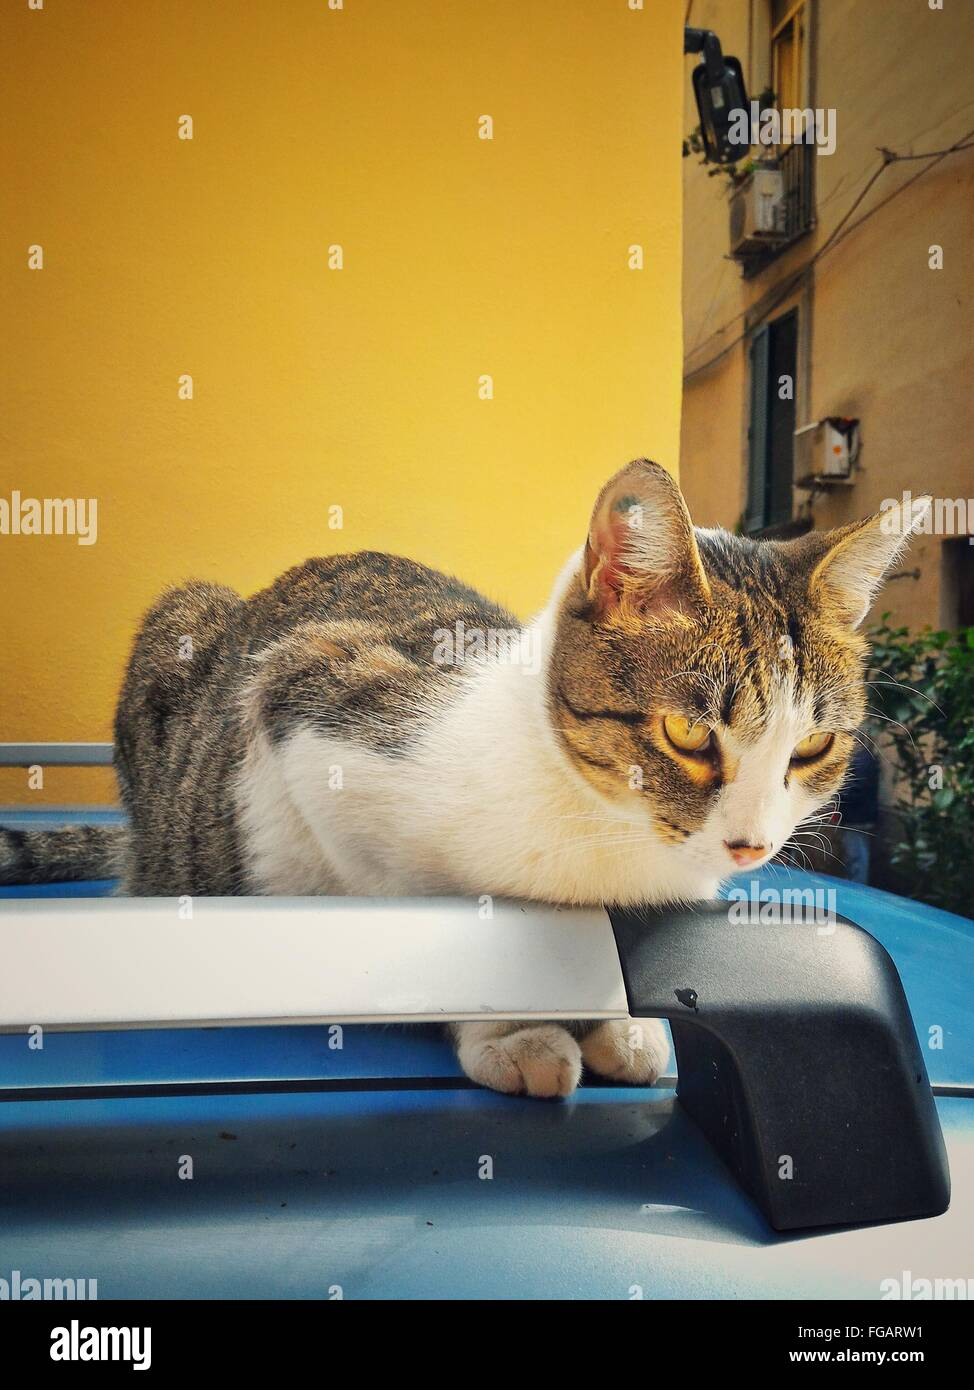 Close-Up Of Cat Sitting On Car Roof Against Yellow Building - Stock Image